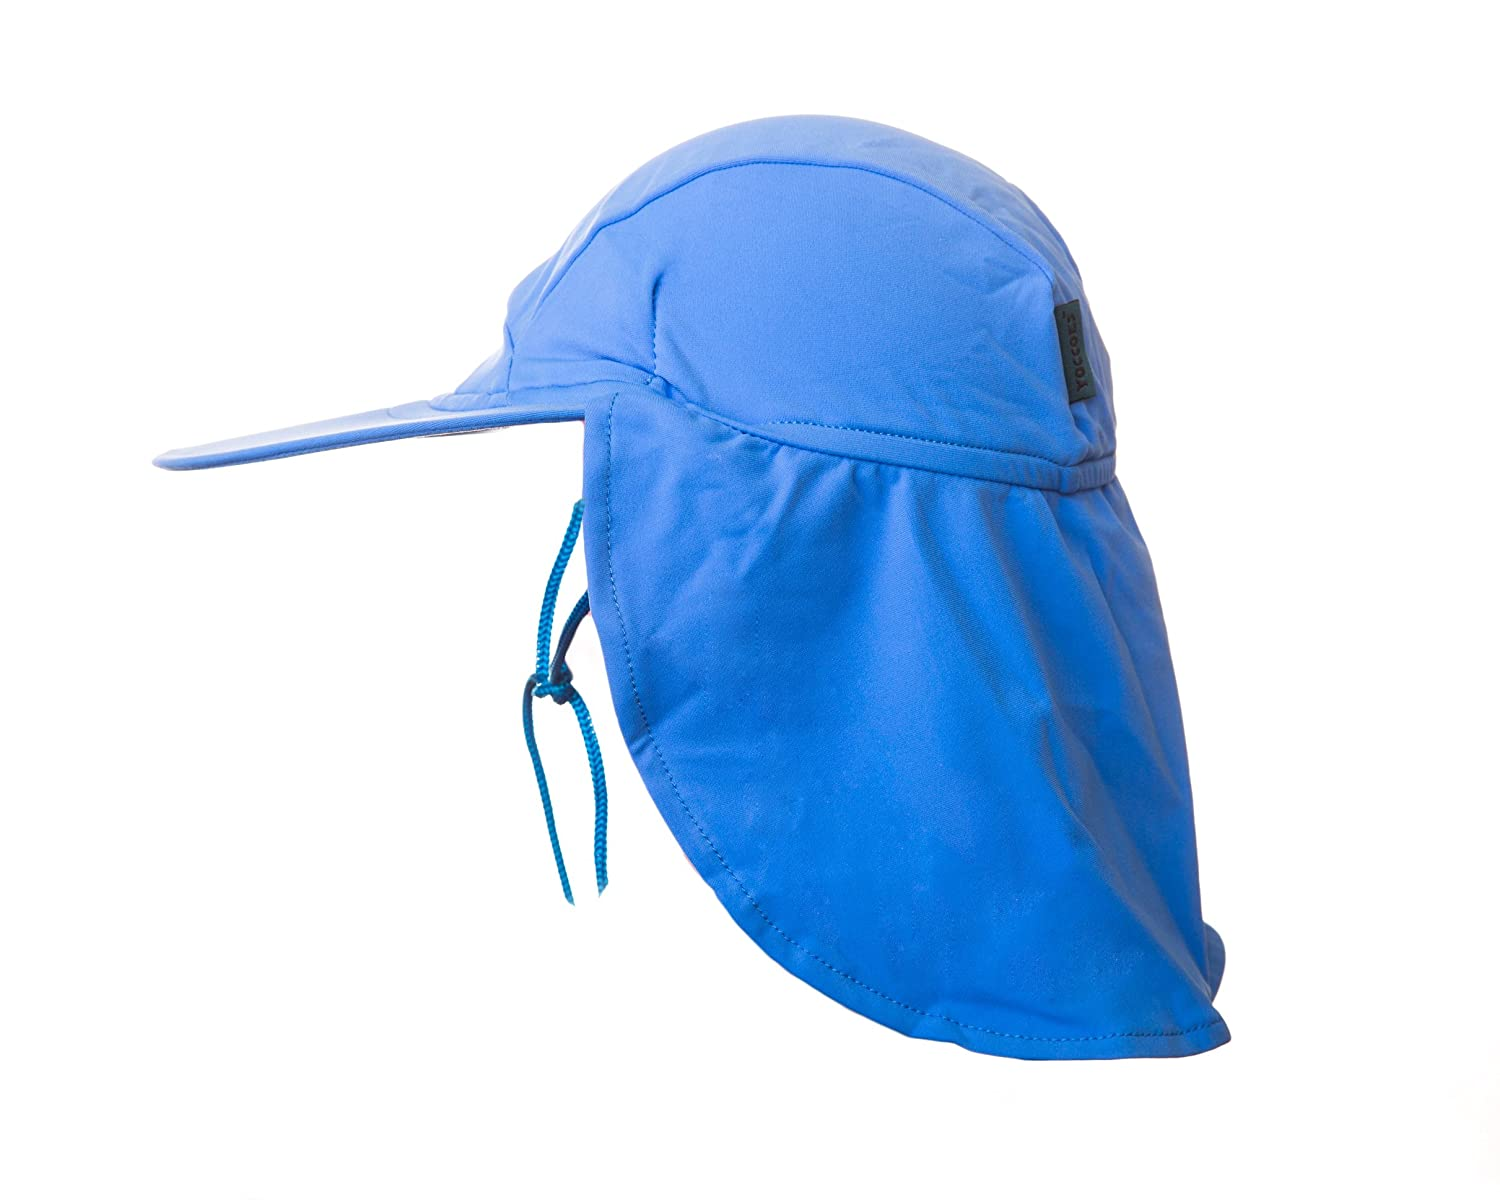 Yoccoes Designs Baby and Toddler UV Sun Hat Blue (S (Baby 9 - 18 months))